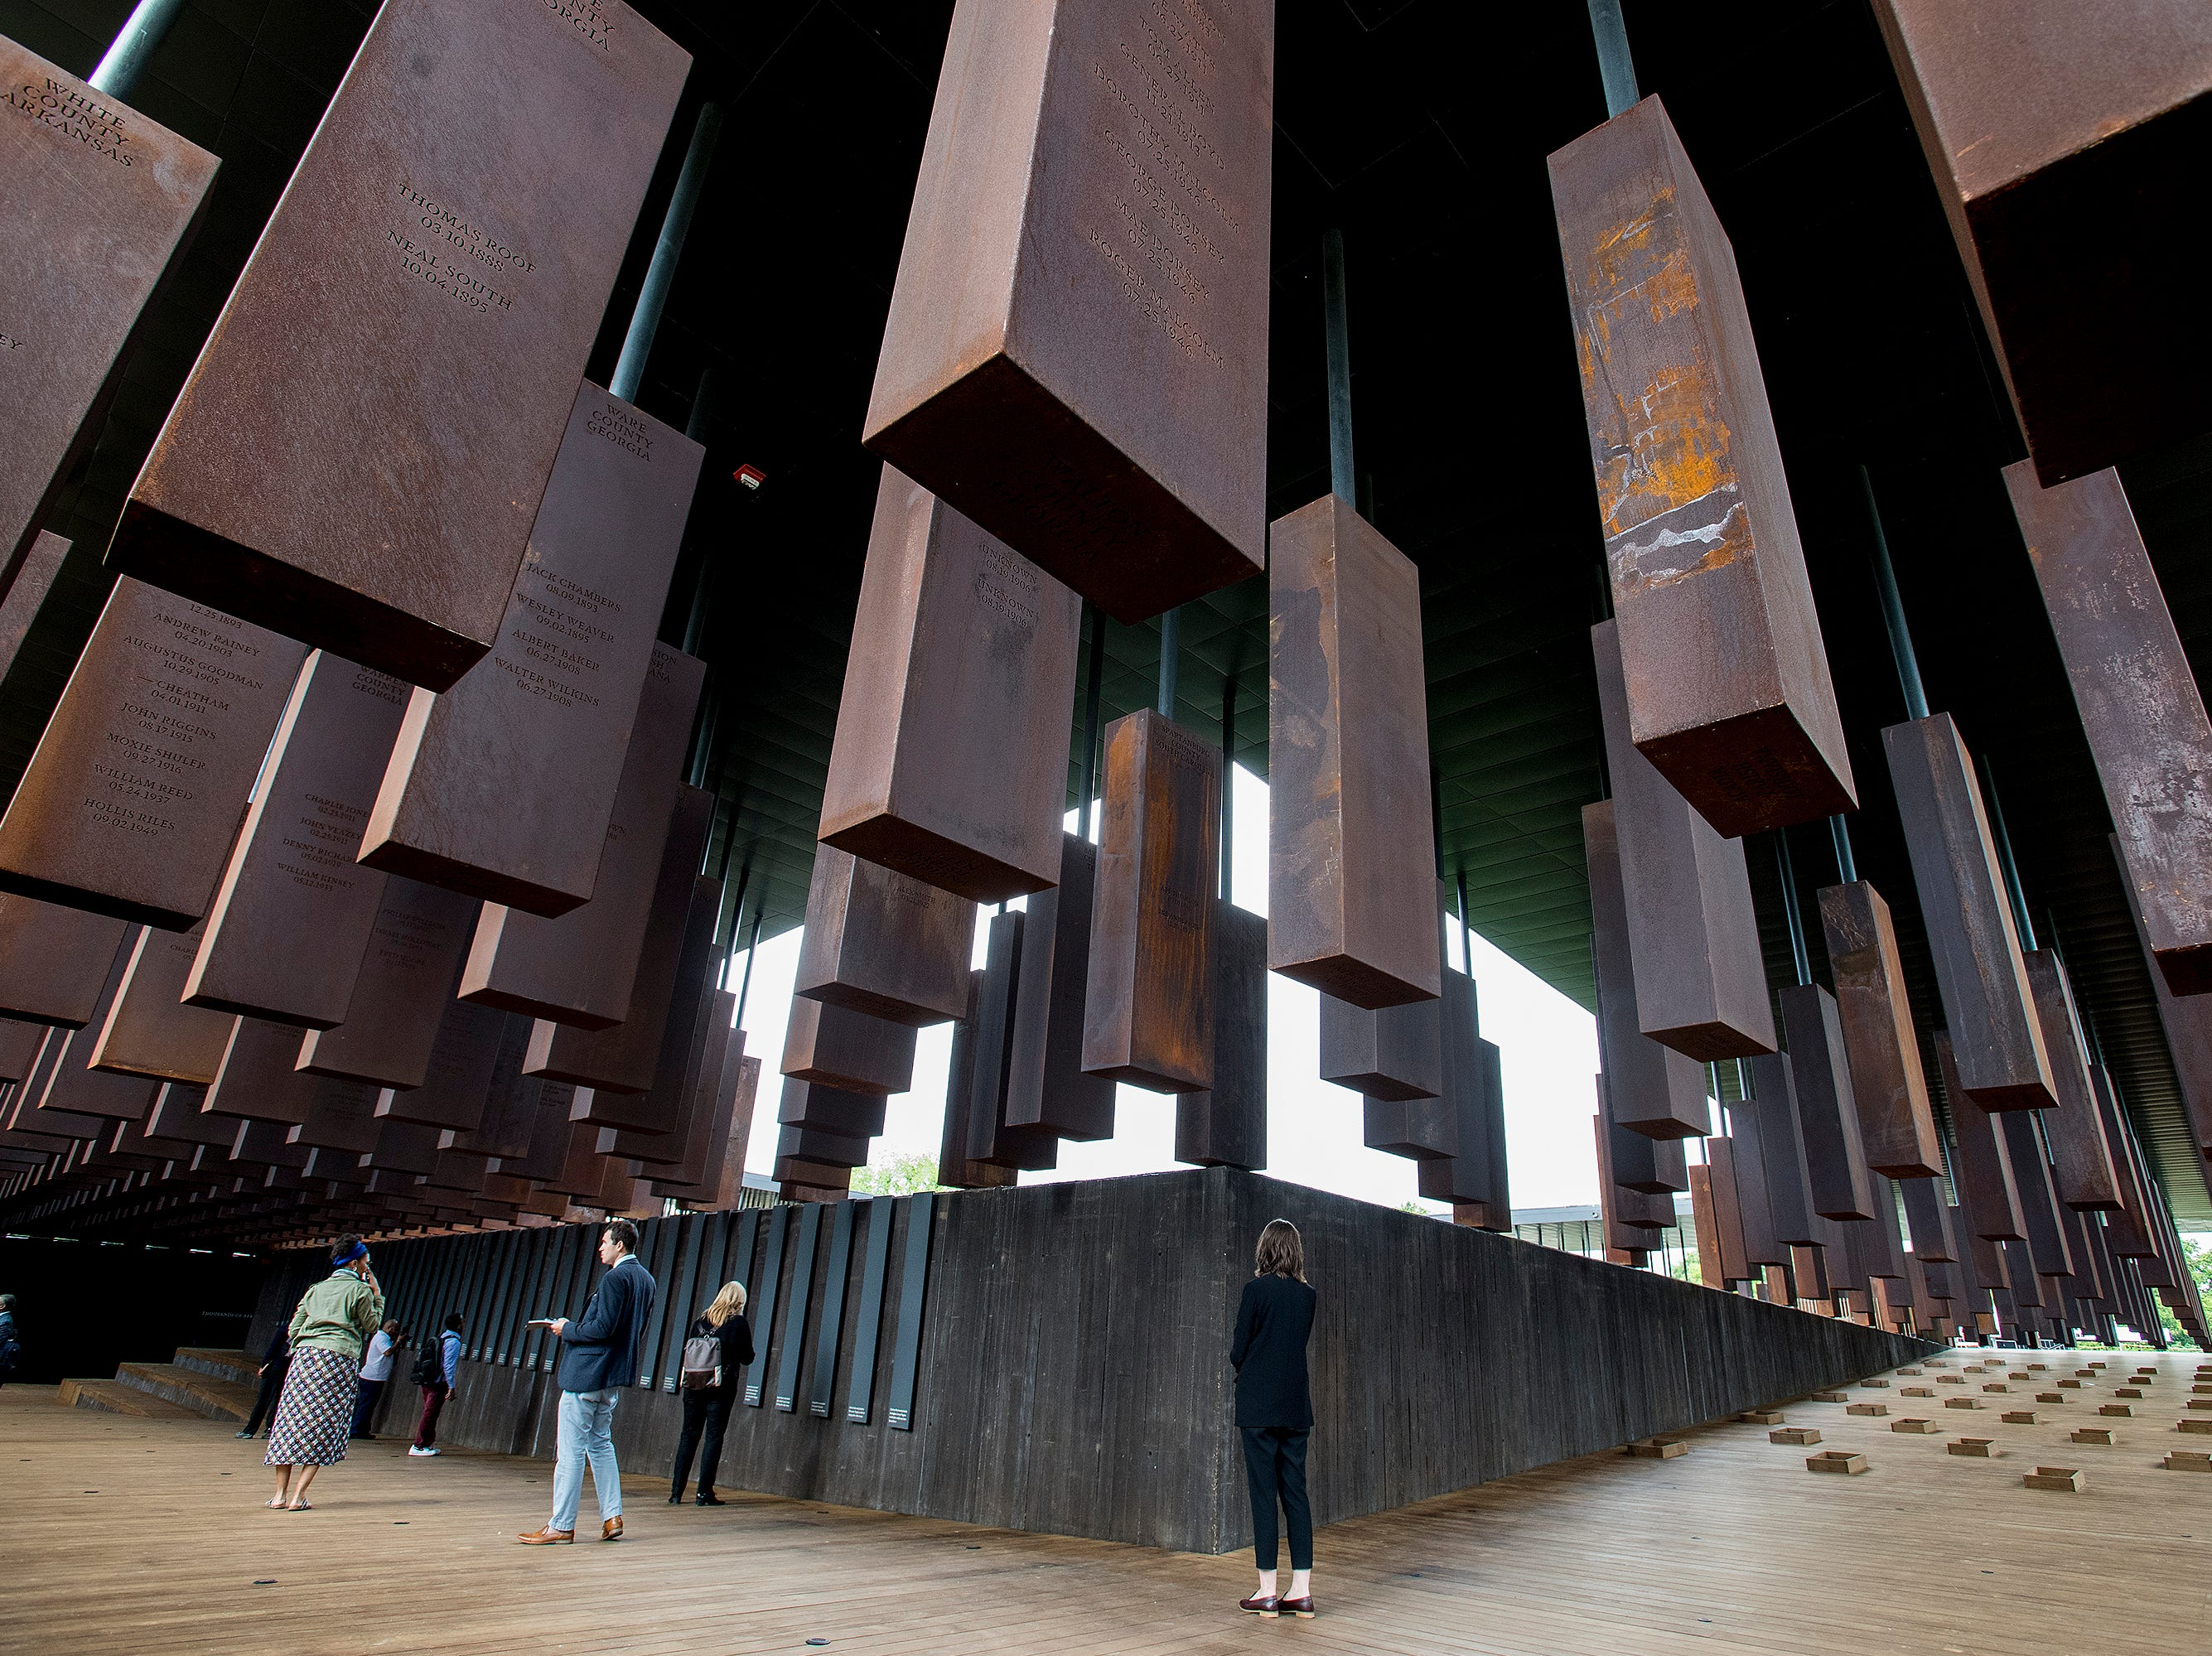 Obilisks with names of people lynched on them by county are displayed at the National Memorial for Peace and Justice in Montgomery, Ala. on Monday April 23, 2018.